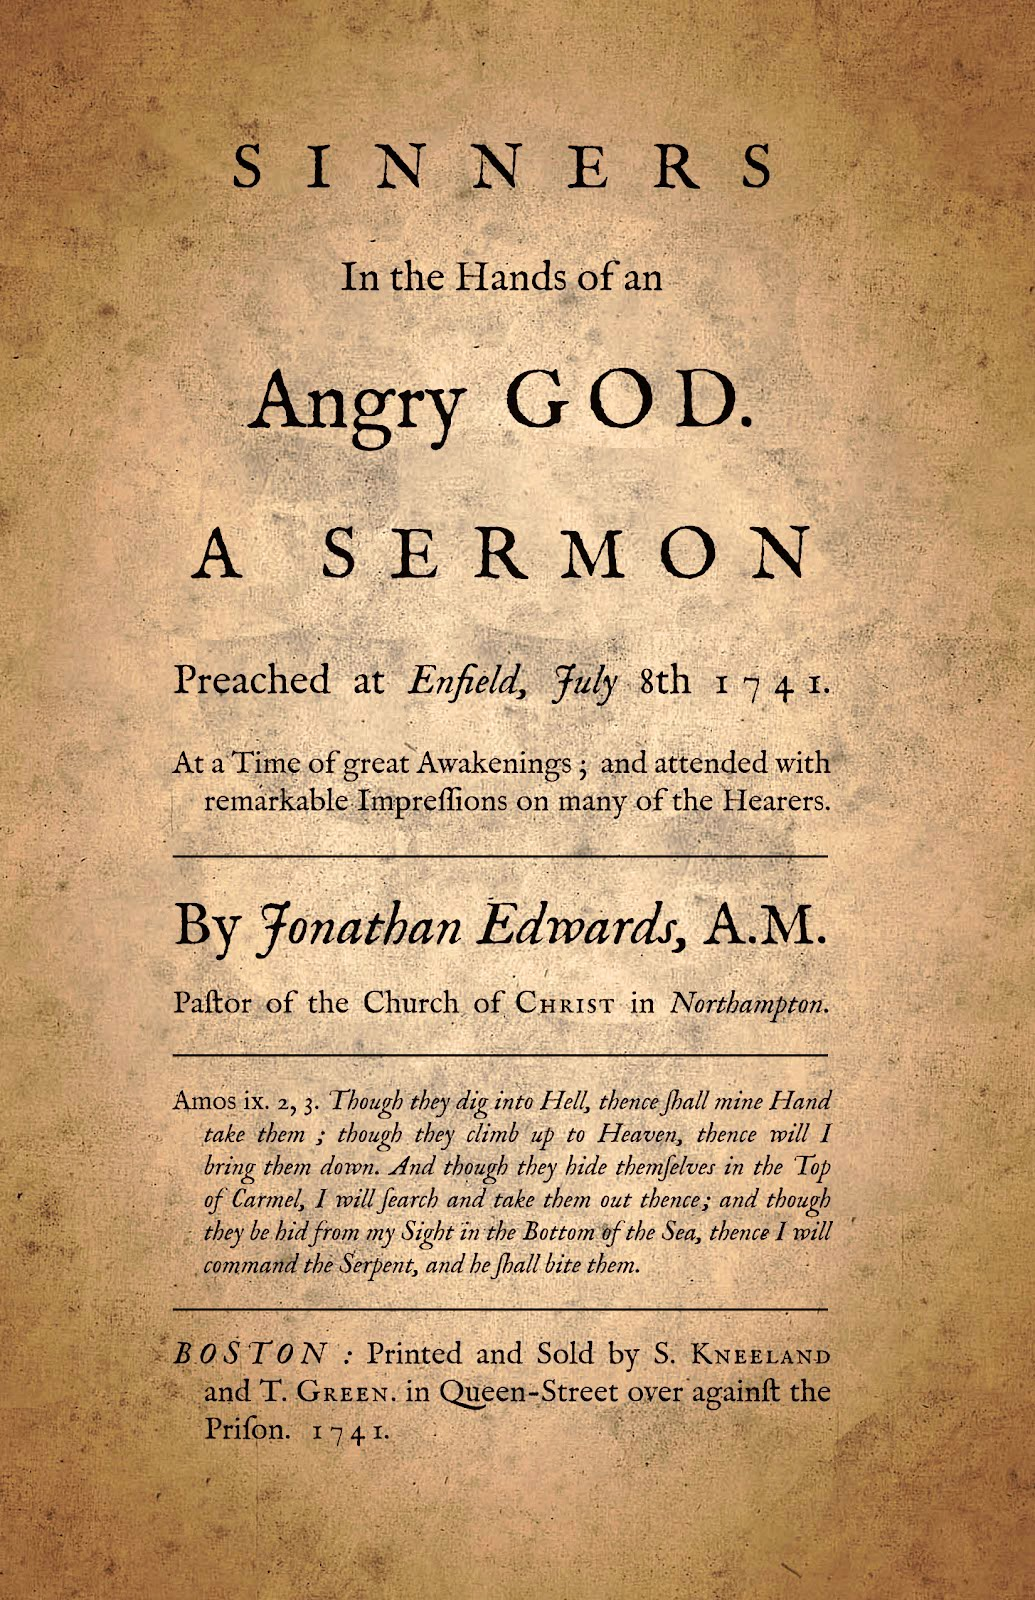 sinners in the hands of an angry god essay will write your sinners in the hands of an angry god essay will write your essaysfor money get a quote